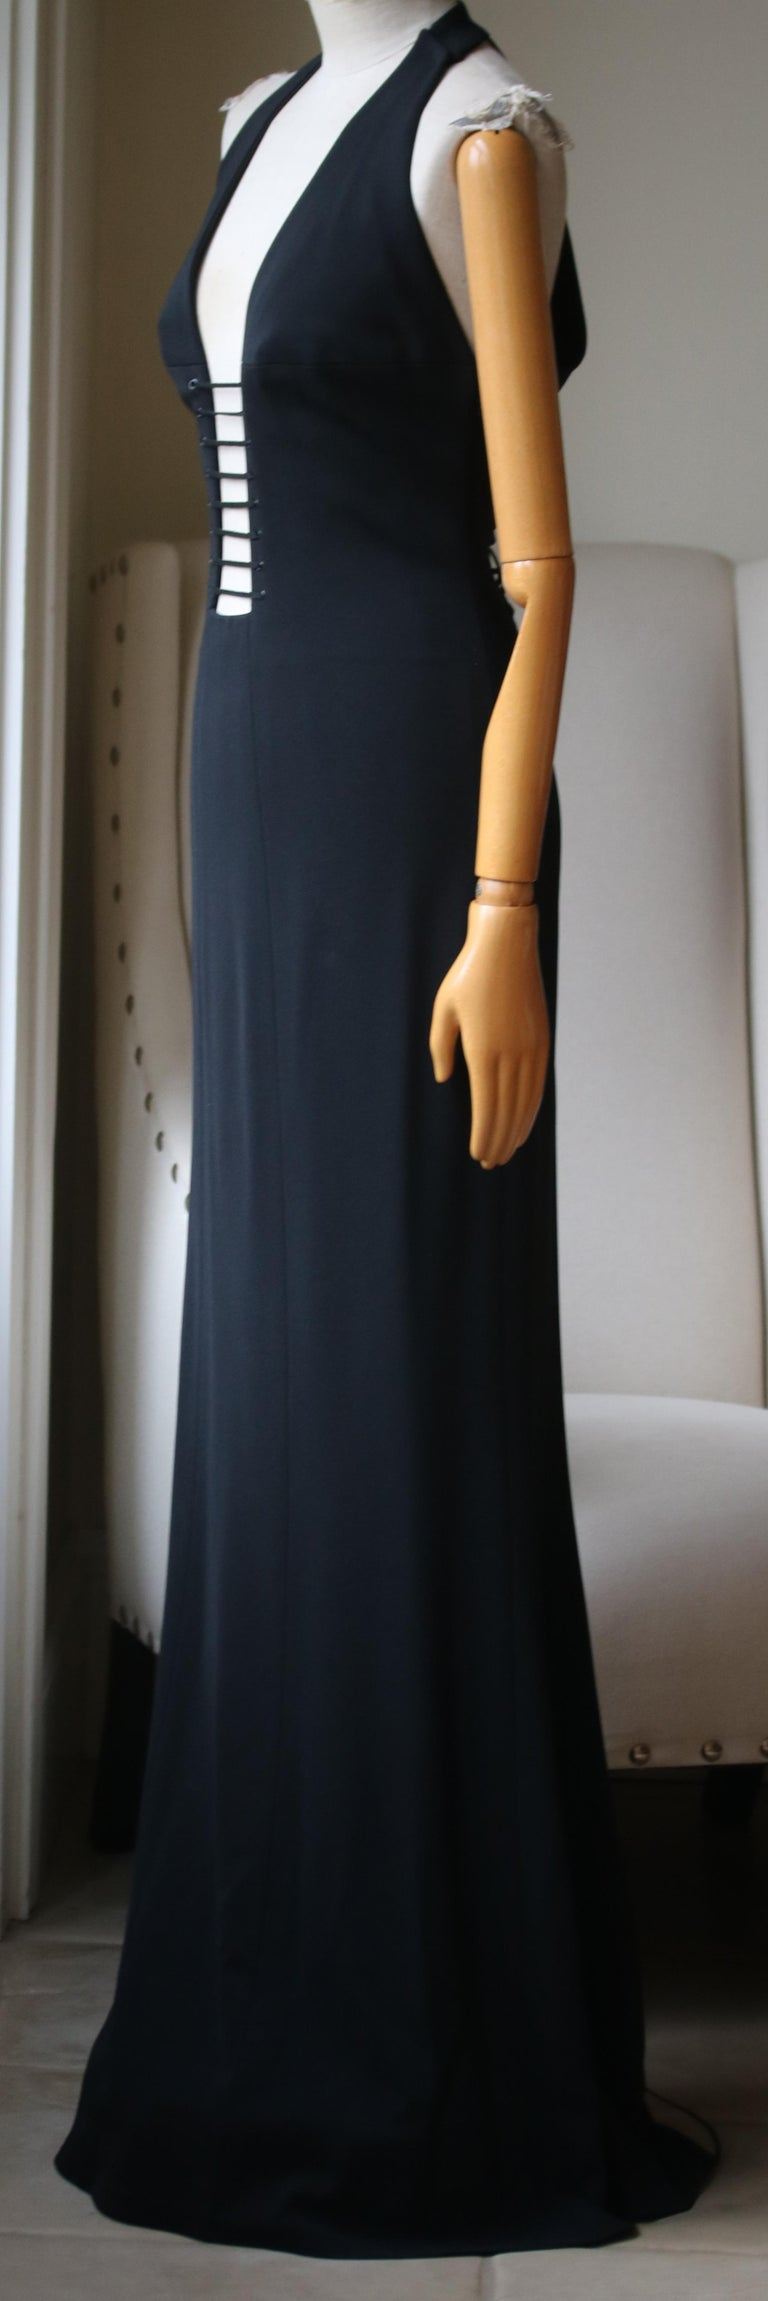 Azzedine Alaïa Haute Couture 2003 gown with lace up detail down the back. Deep v neck with cutout detail. Satin panels on the back. Size label has been cutout for comfort.   Size: FR 40 (UK 12, US 8, IT 44)  Dimensions: Approx.  Bust - 83.8 cm / 33